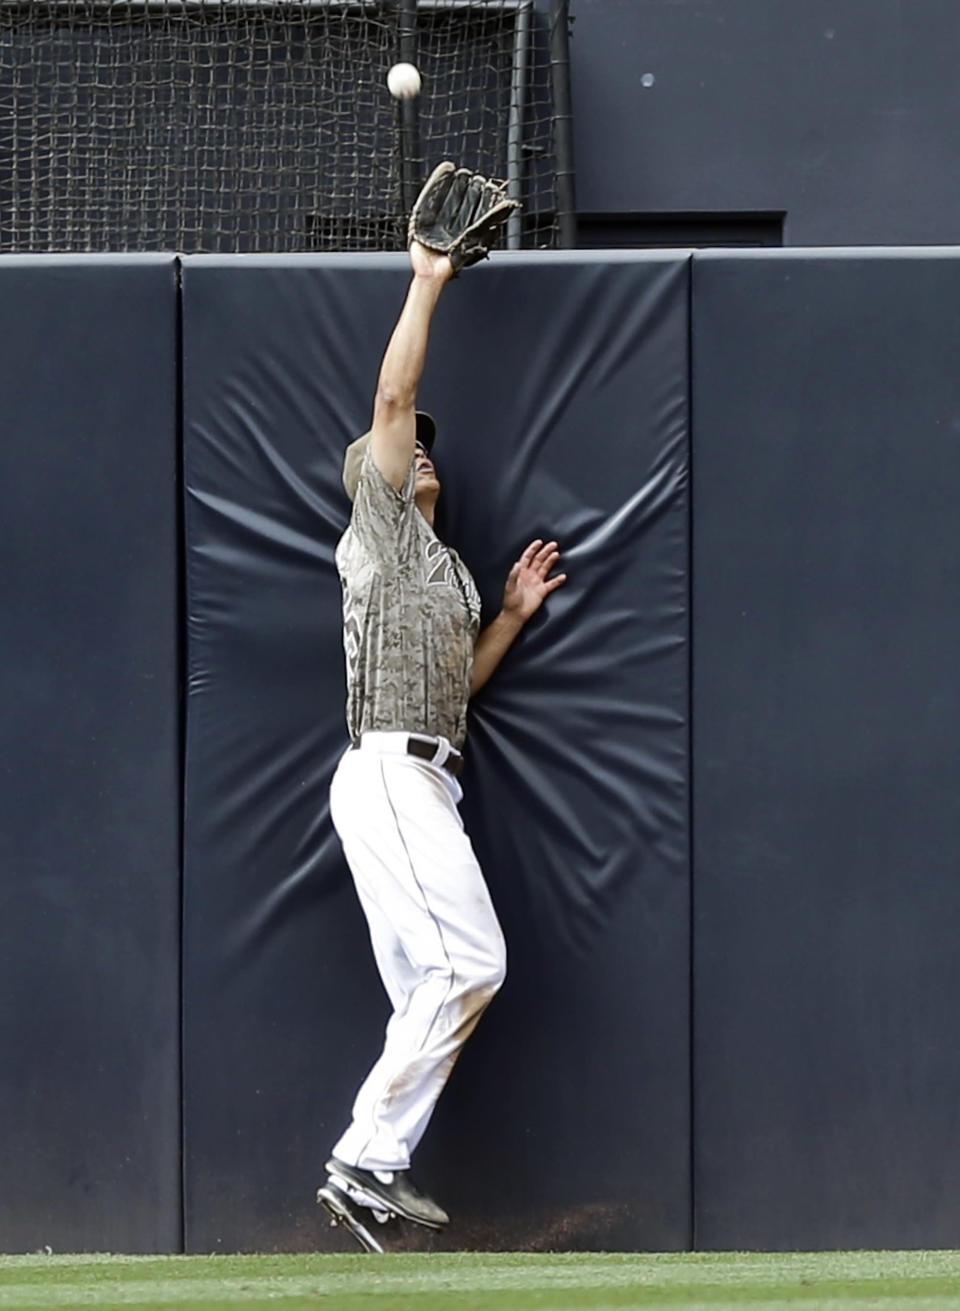 San Diego Padres center fielder Will Venable takes a home run away from New York Mets' Marlon Byrd in the eighth inning of a baseball game on Sunday, Aug. 18, 2013, in San Diego. (AP Photo/Lenny Ignelzi)